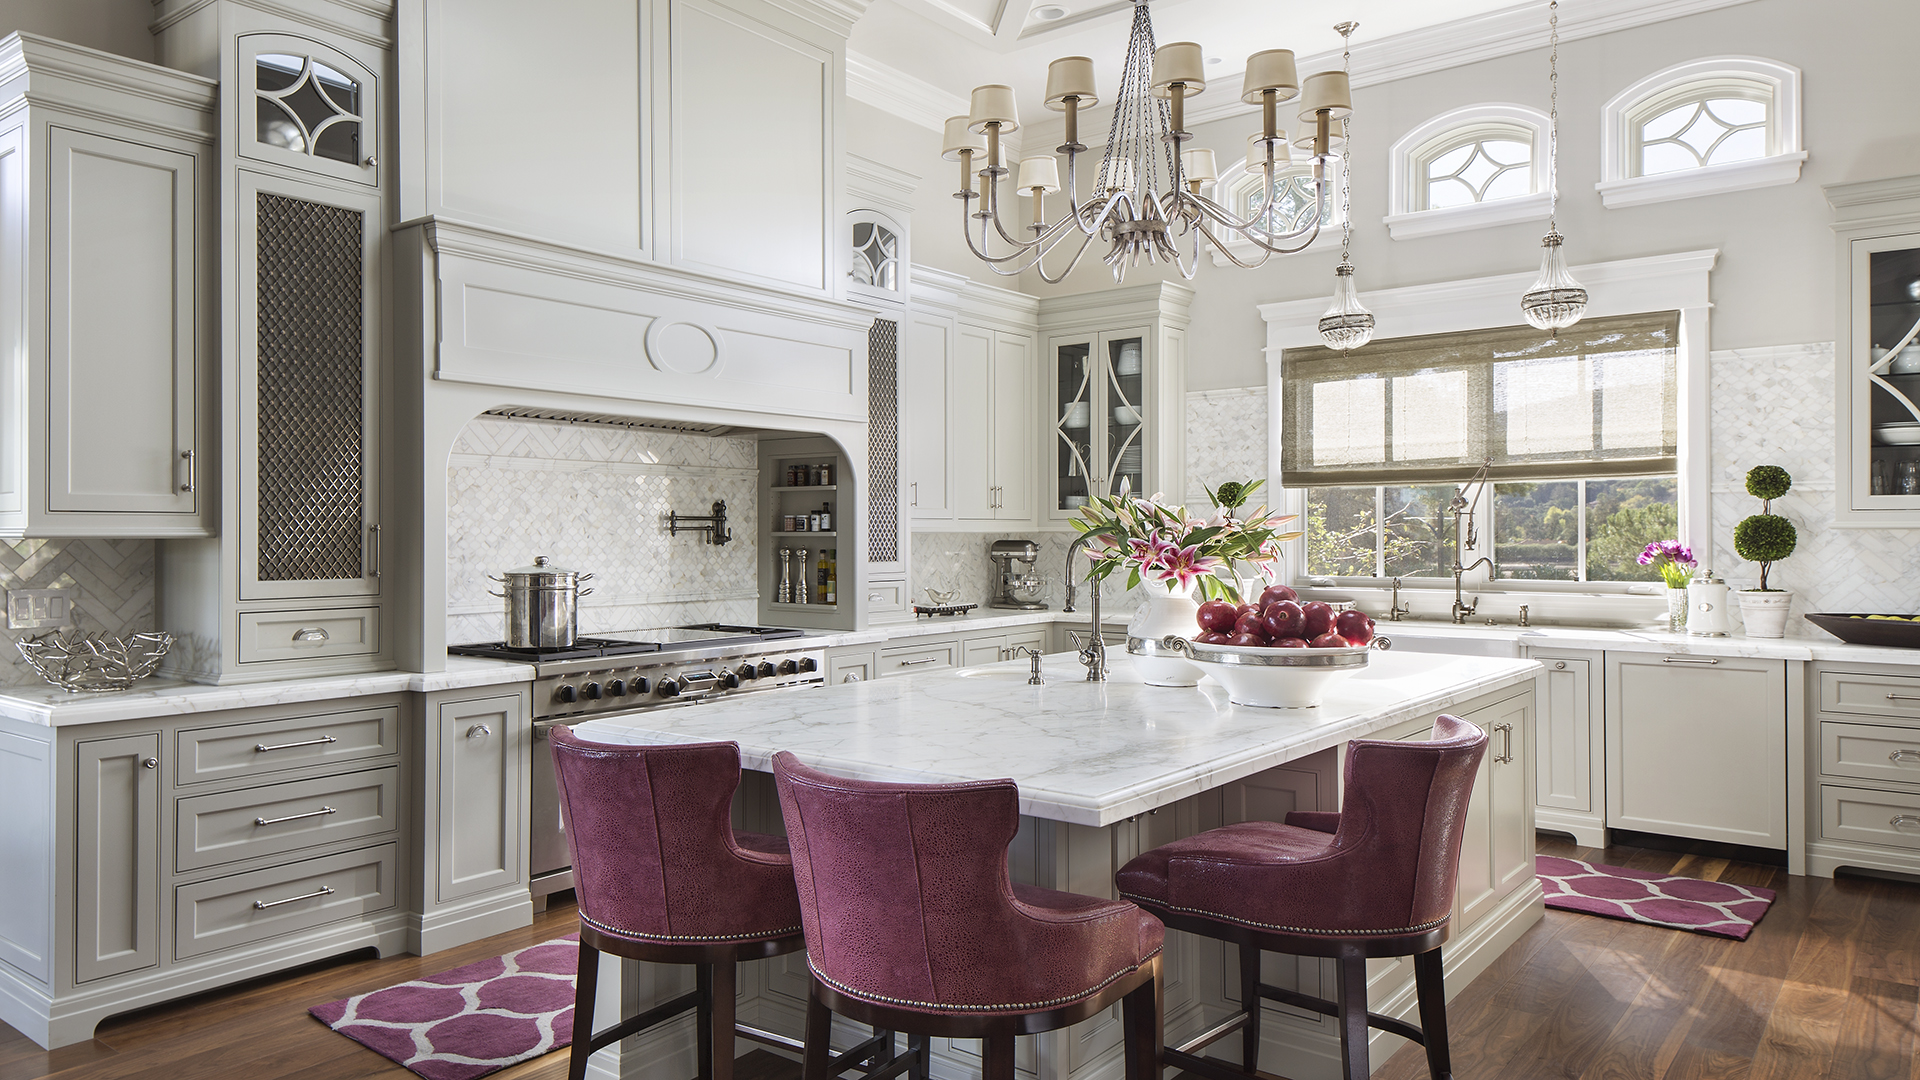 Sophisticated Chic Spectrum Interior Design